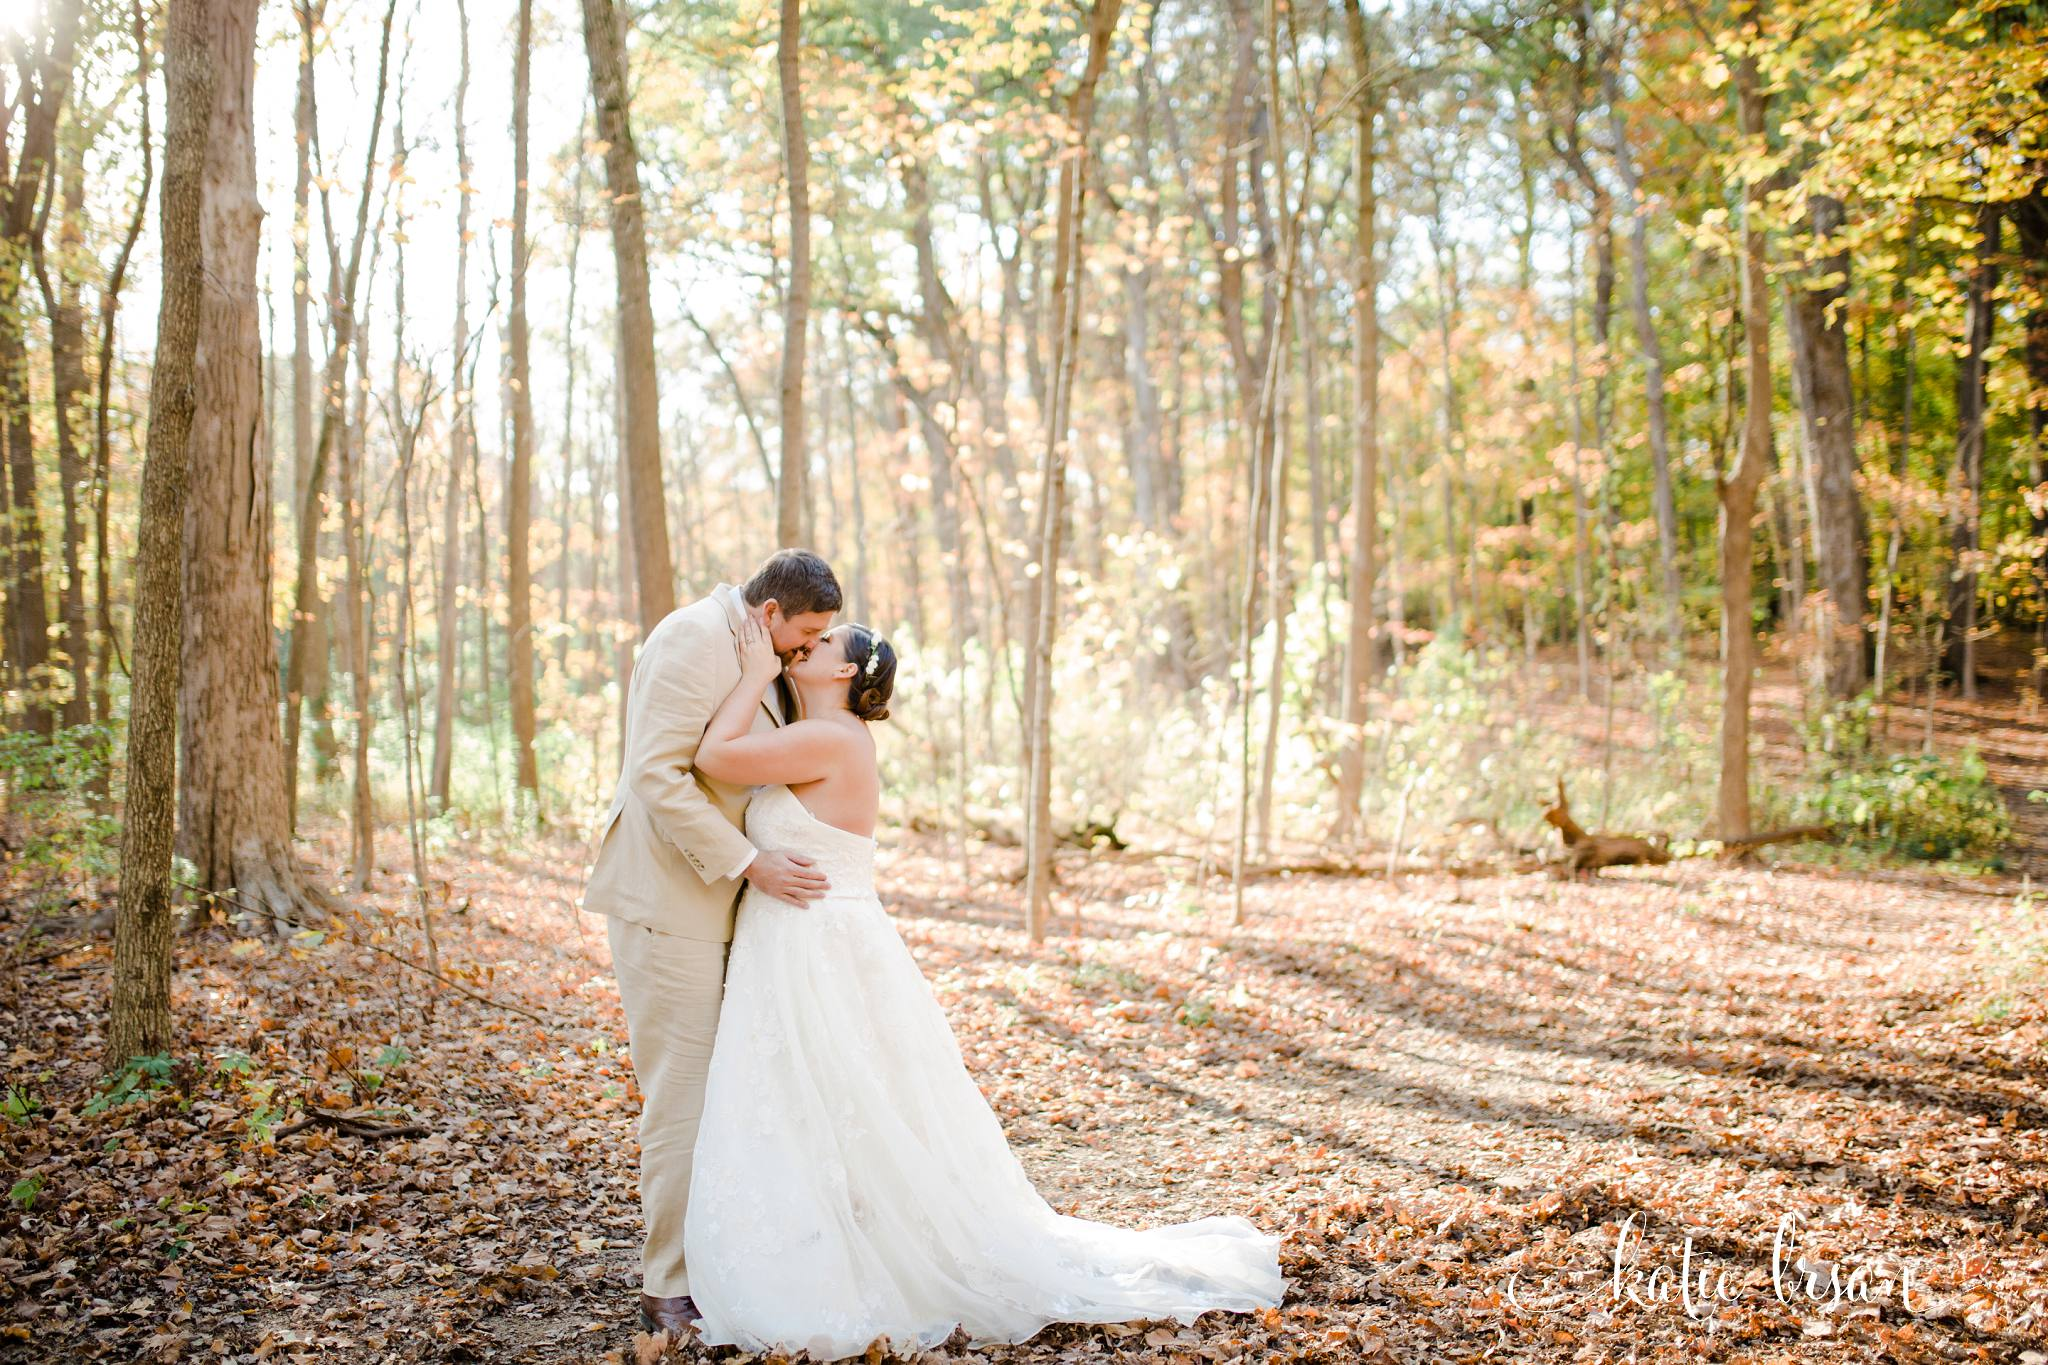 DownersGrove_BackyardWedding_GilbertsPark_1070.jpg